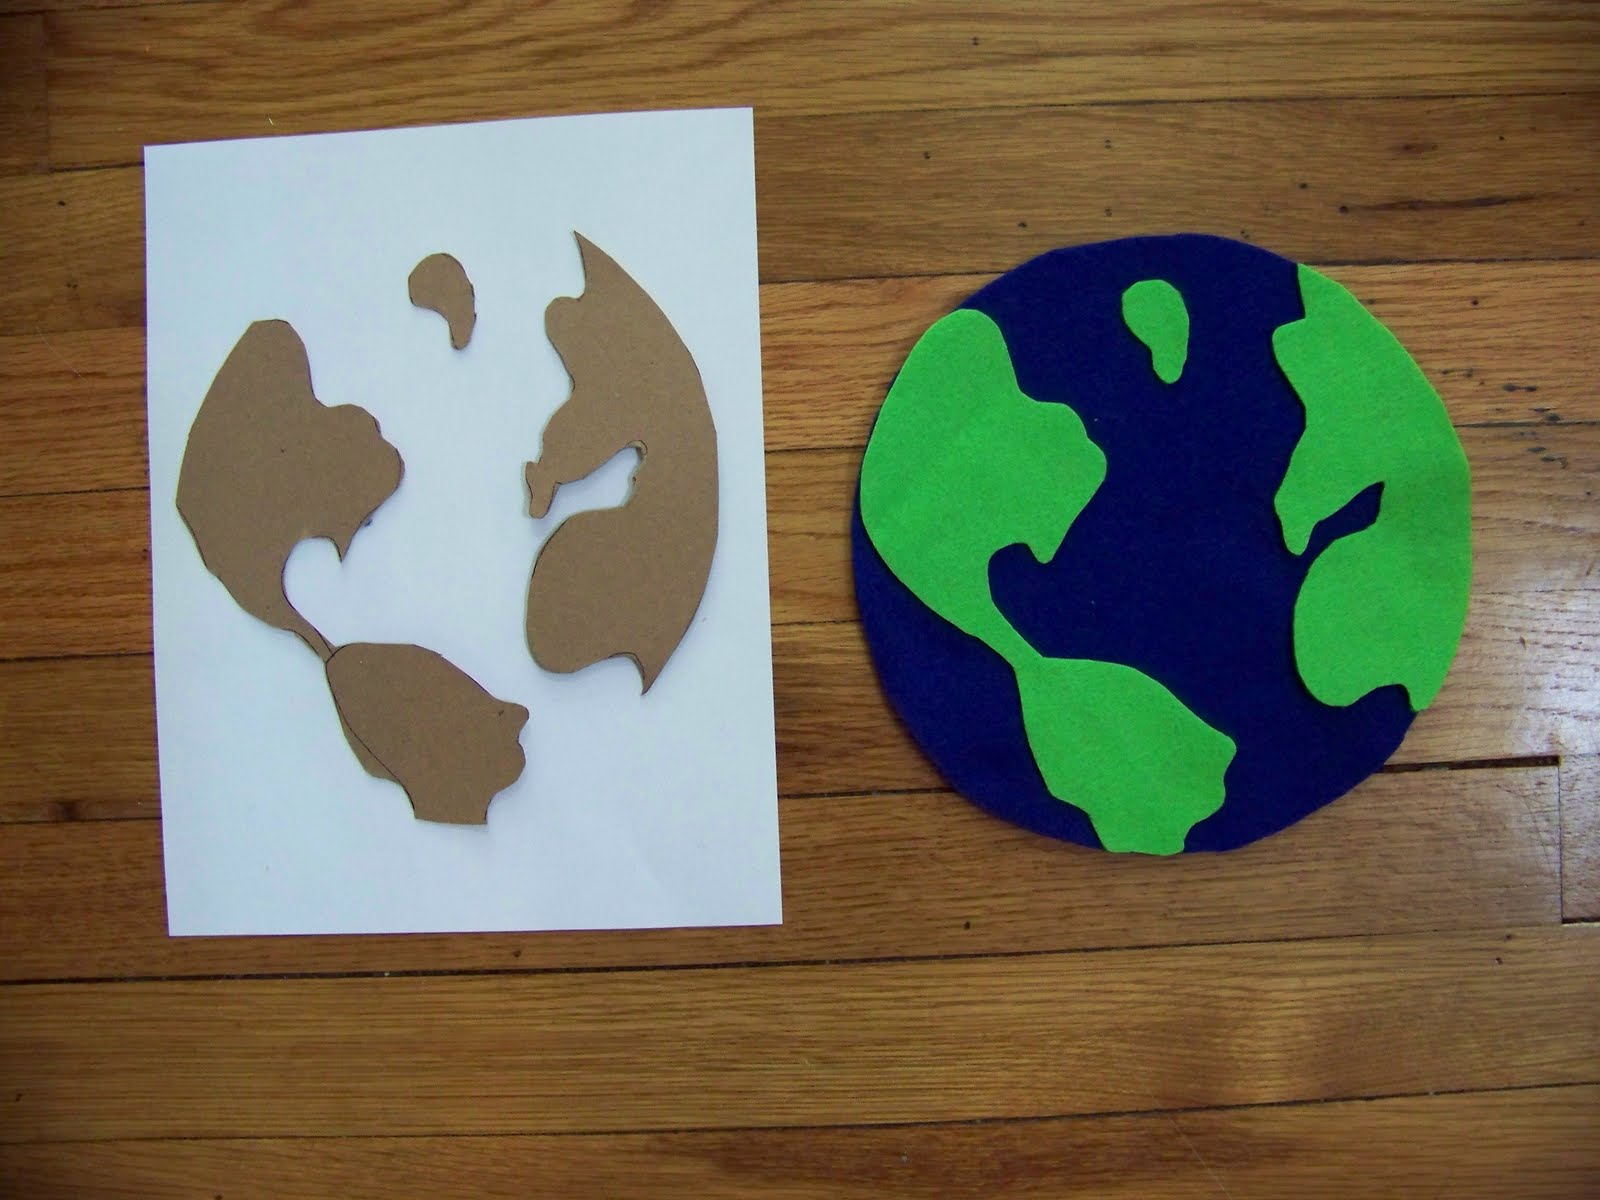 Pin Continent Stencils On Pinterest